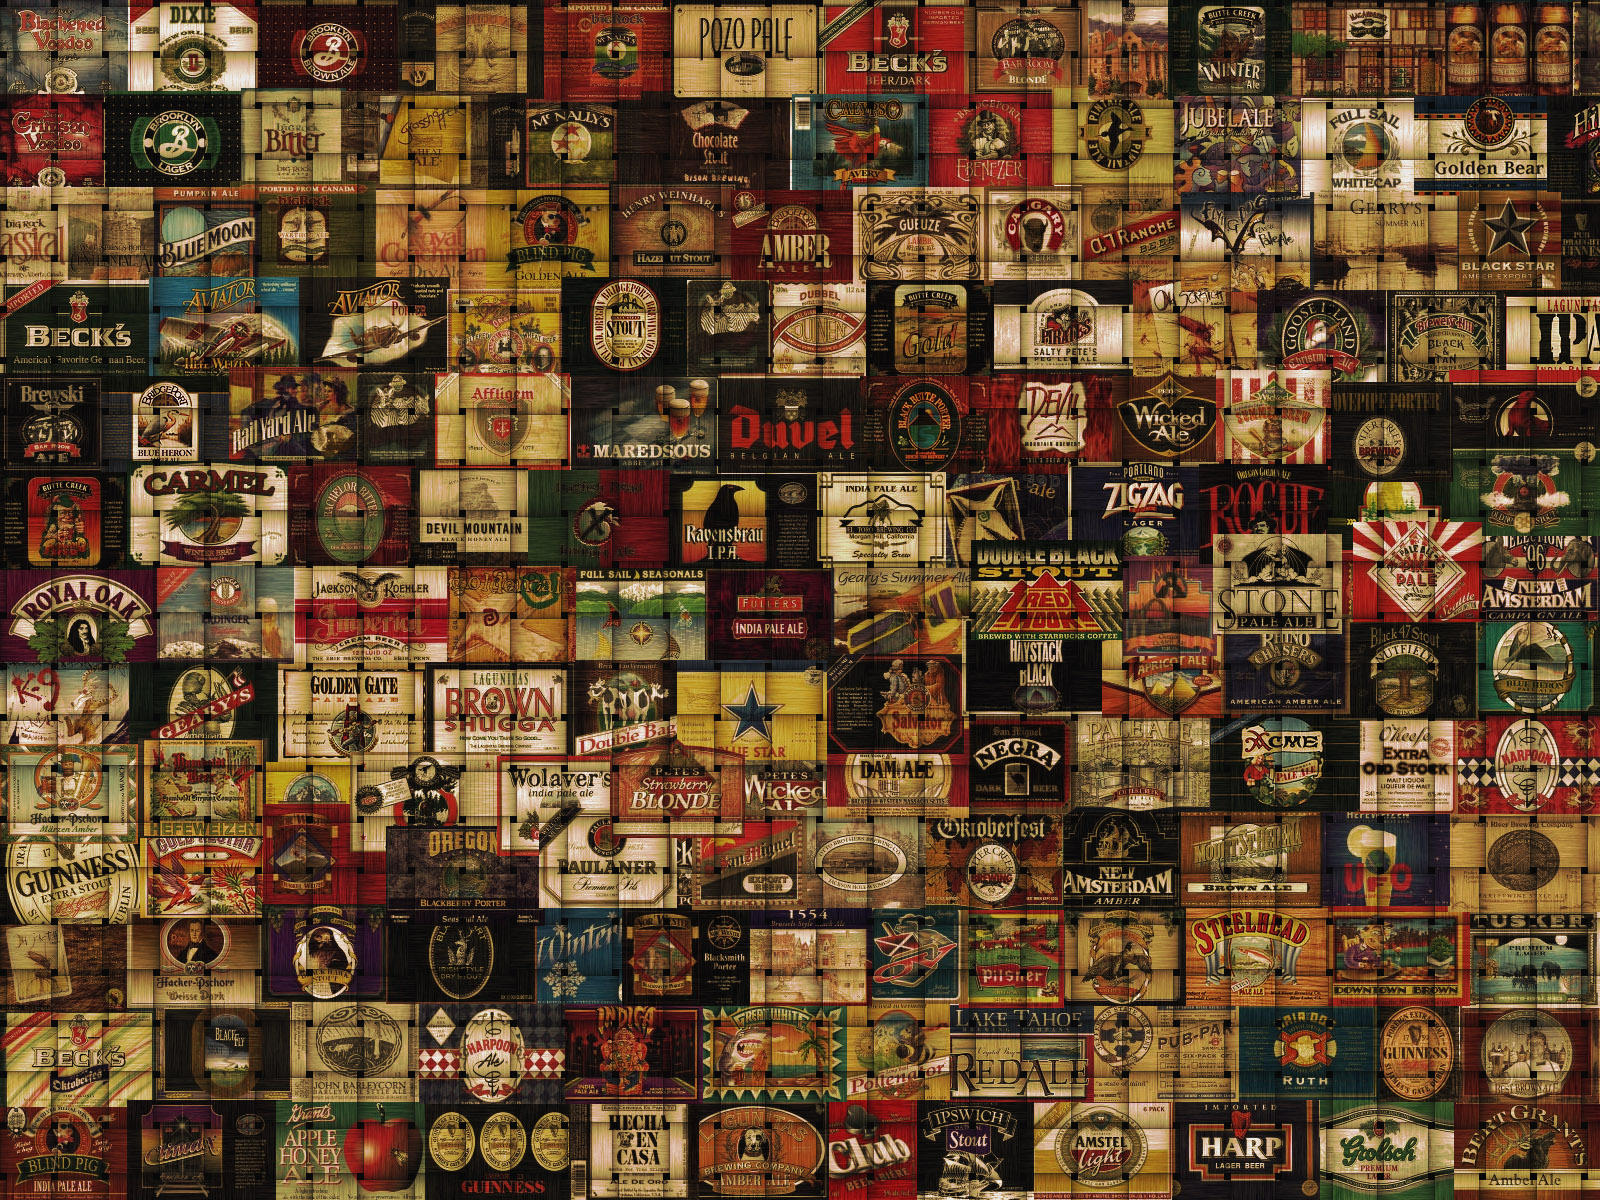 Bro Code Beer Hd Wallpaper: Beer Label Background By Rsteagall On DeviantArt